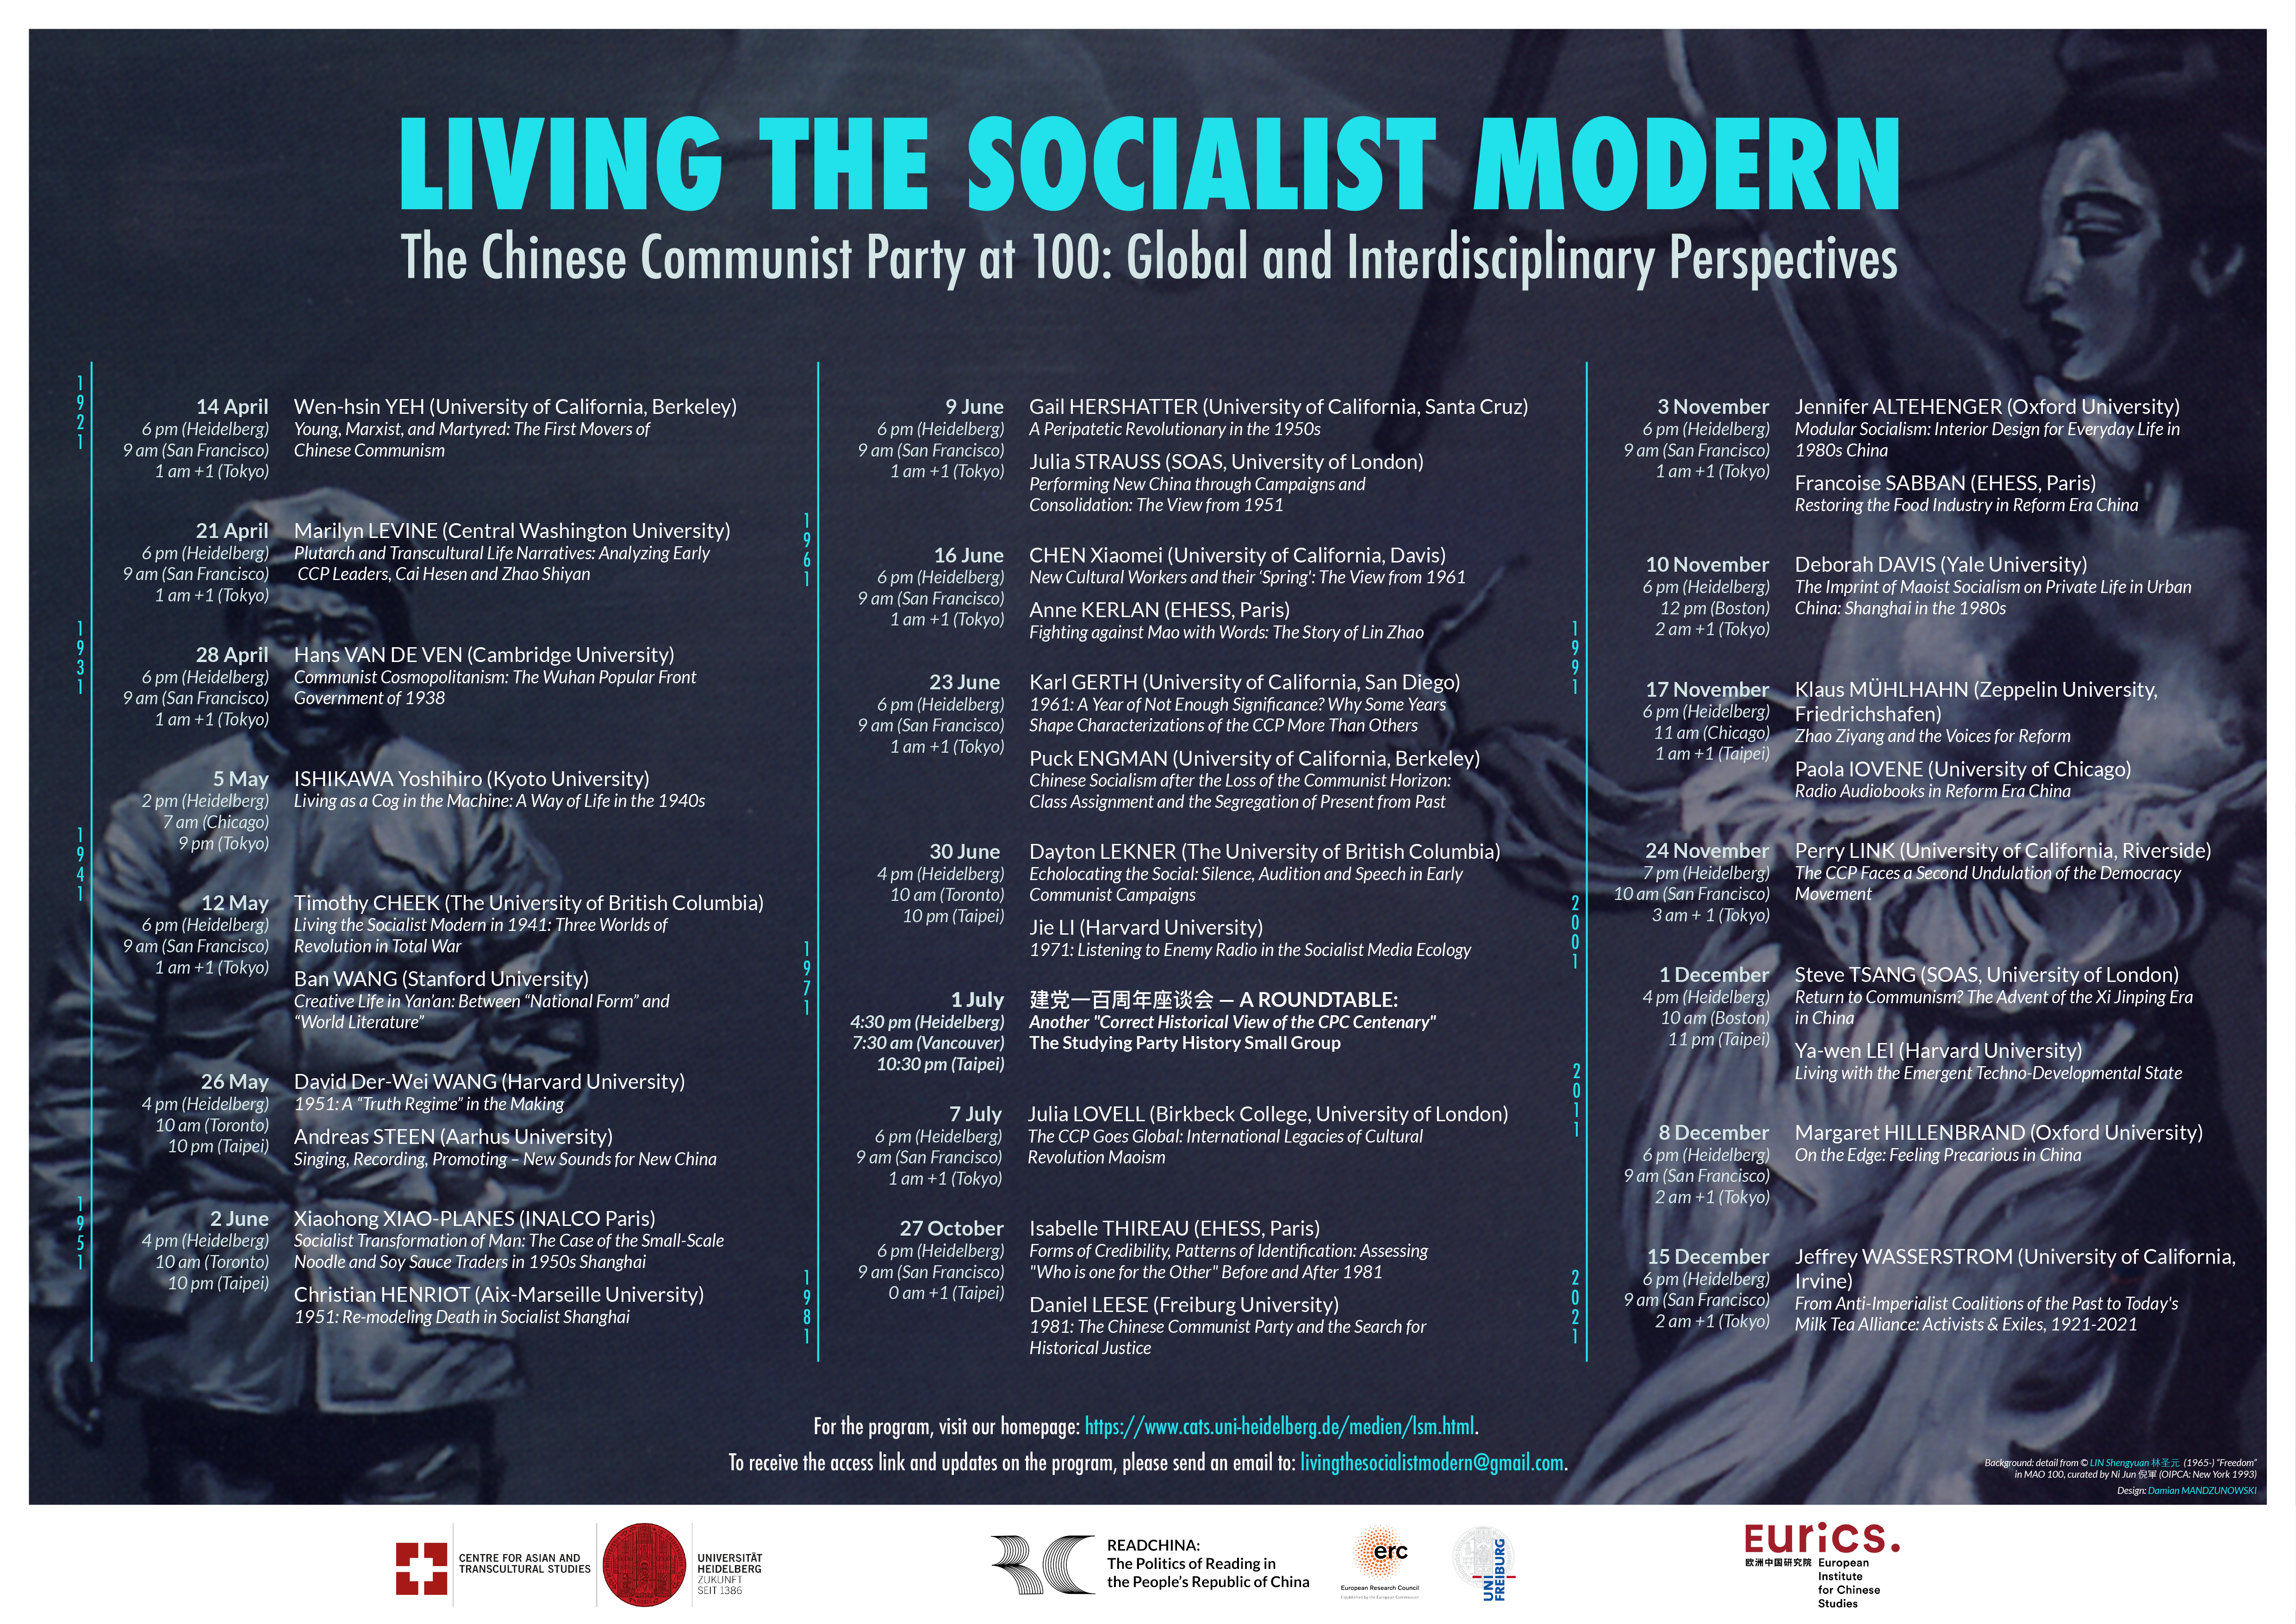 Virtual Lecture Series: Living the Socialist Modern